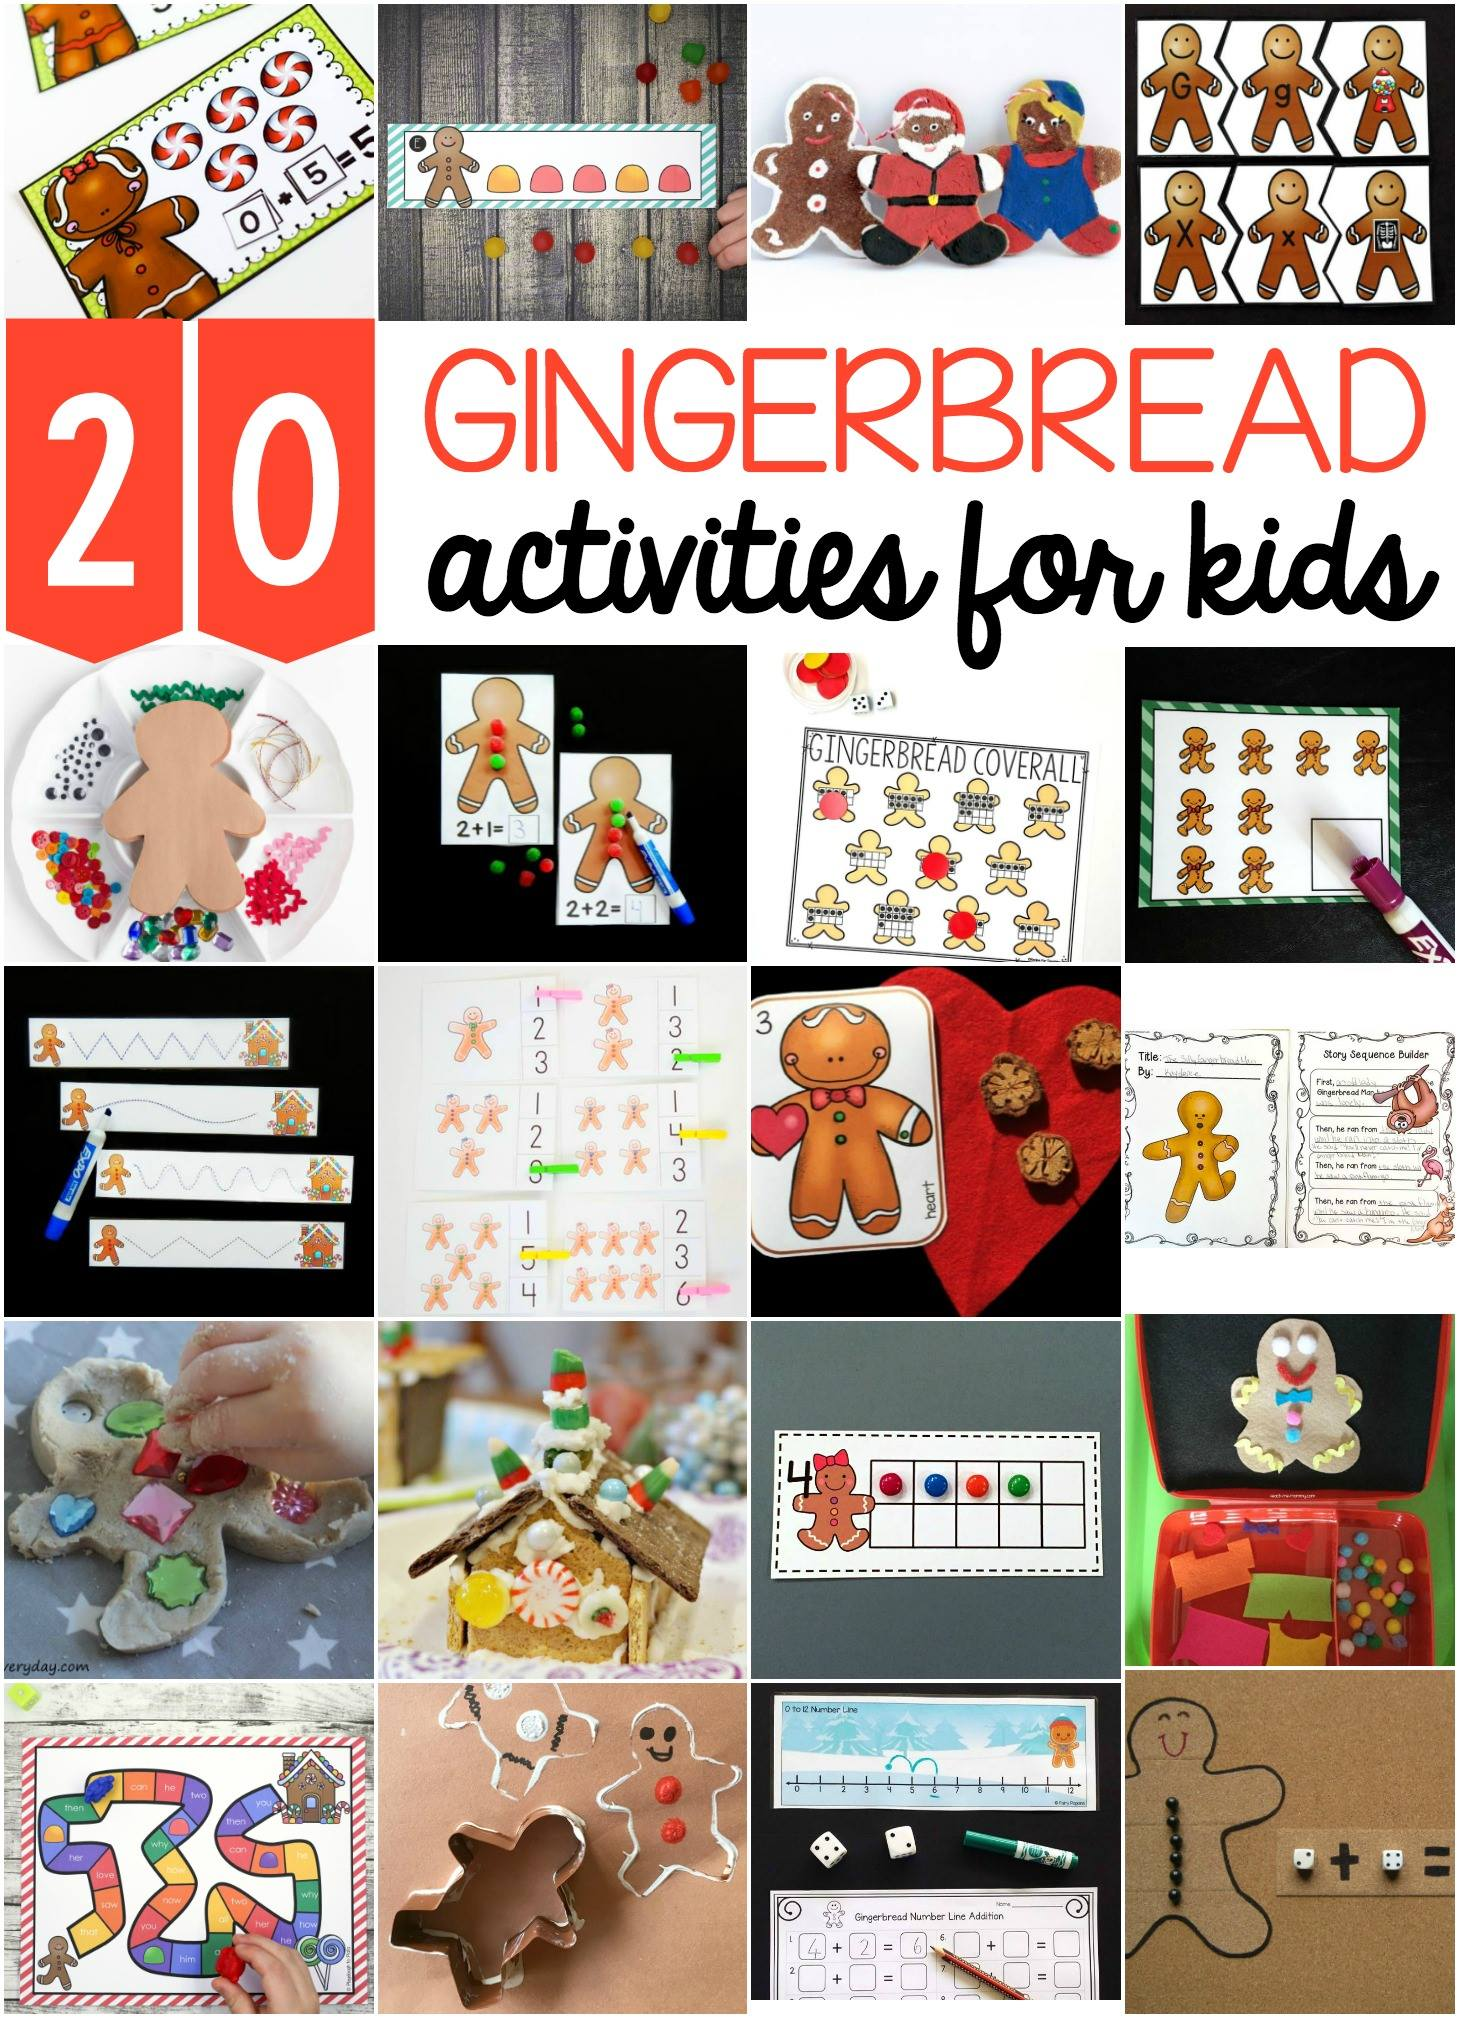 gingerbread-activities-for-kids